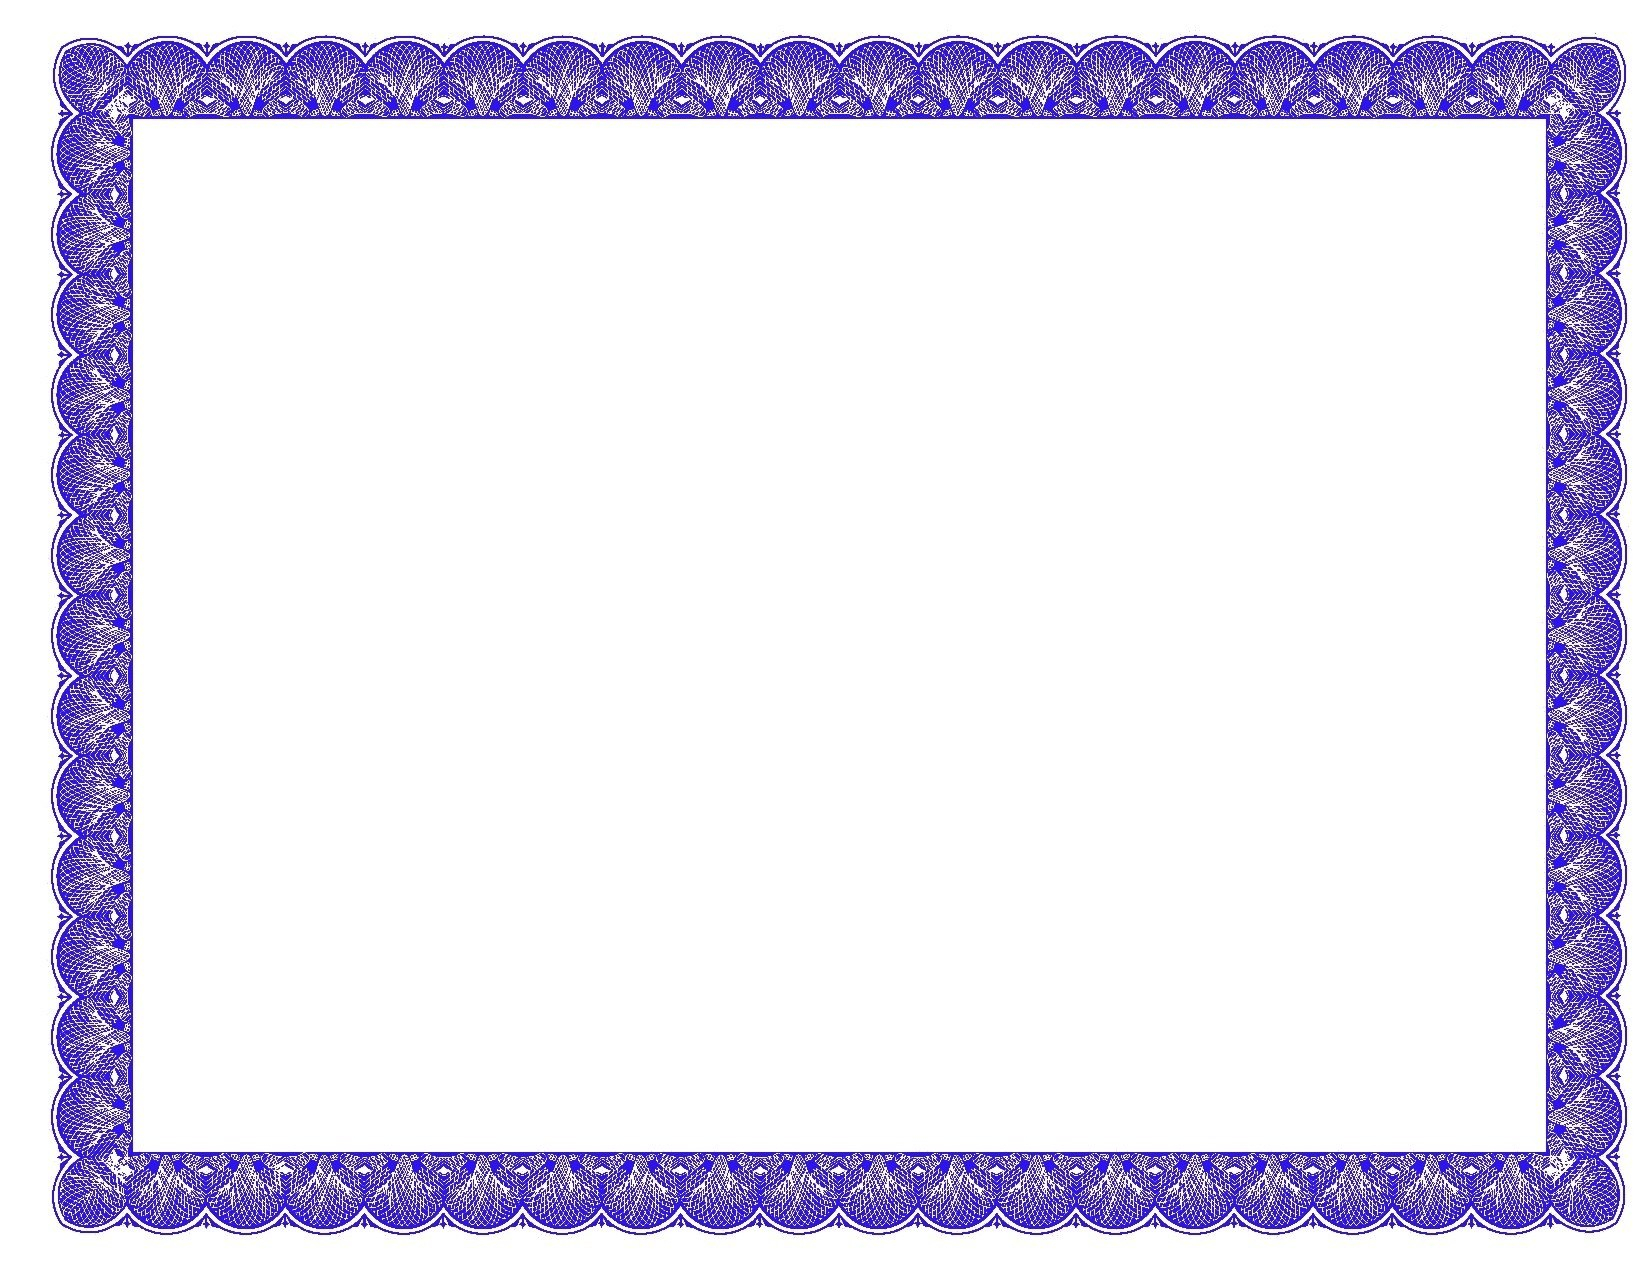 Border Template For Word Free Download  Vectorborders With Regard To Free Certificate Templates For Word 2007